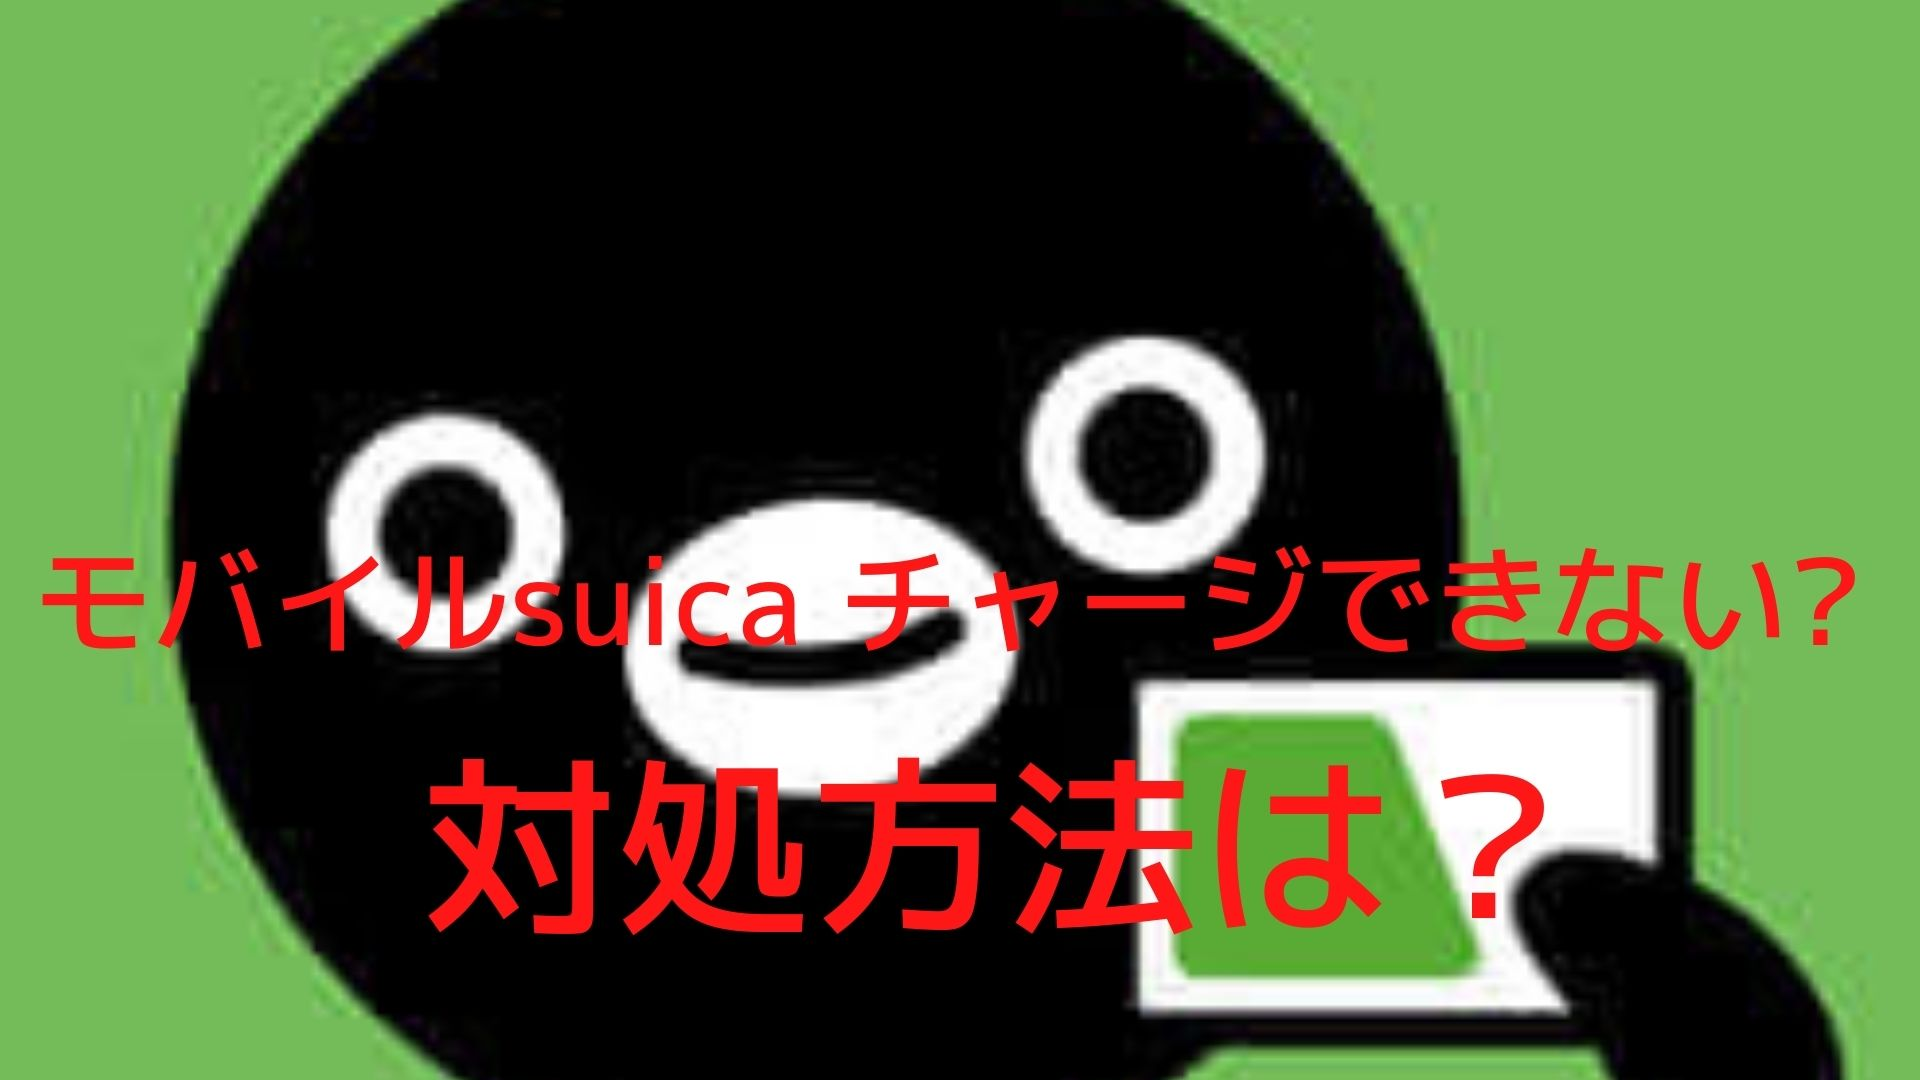 mobile-suica-cant-charge